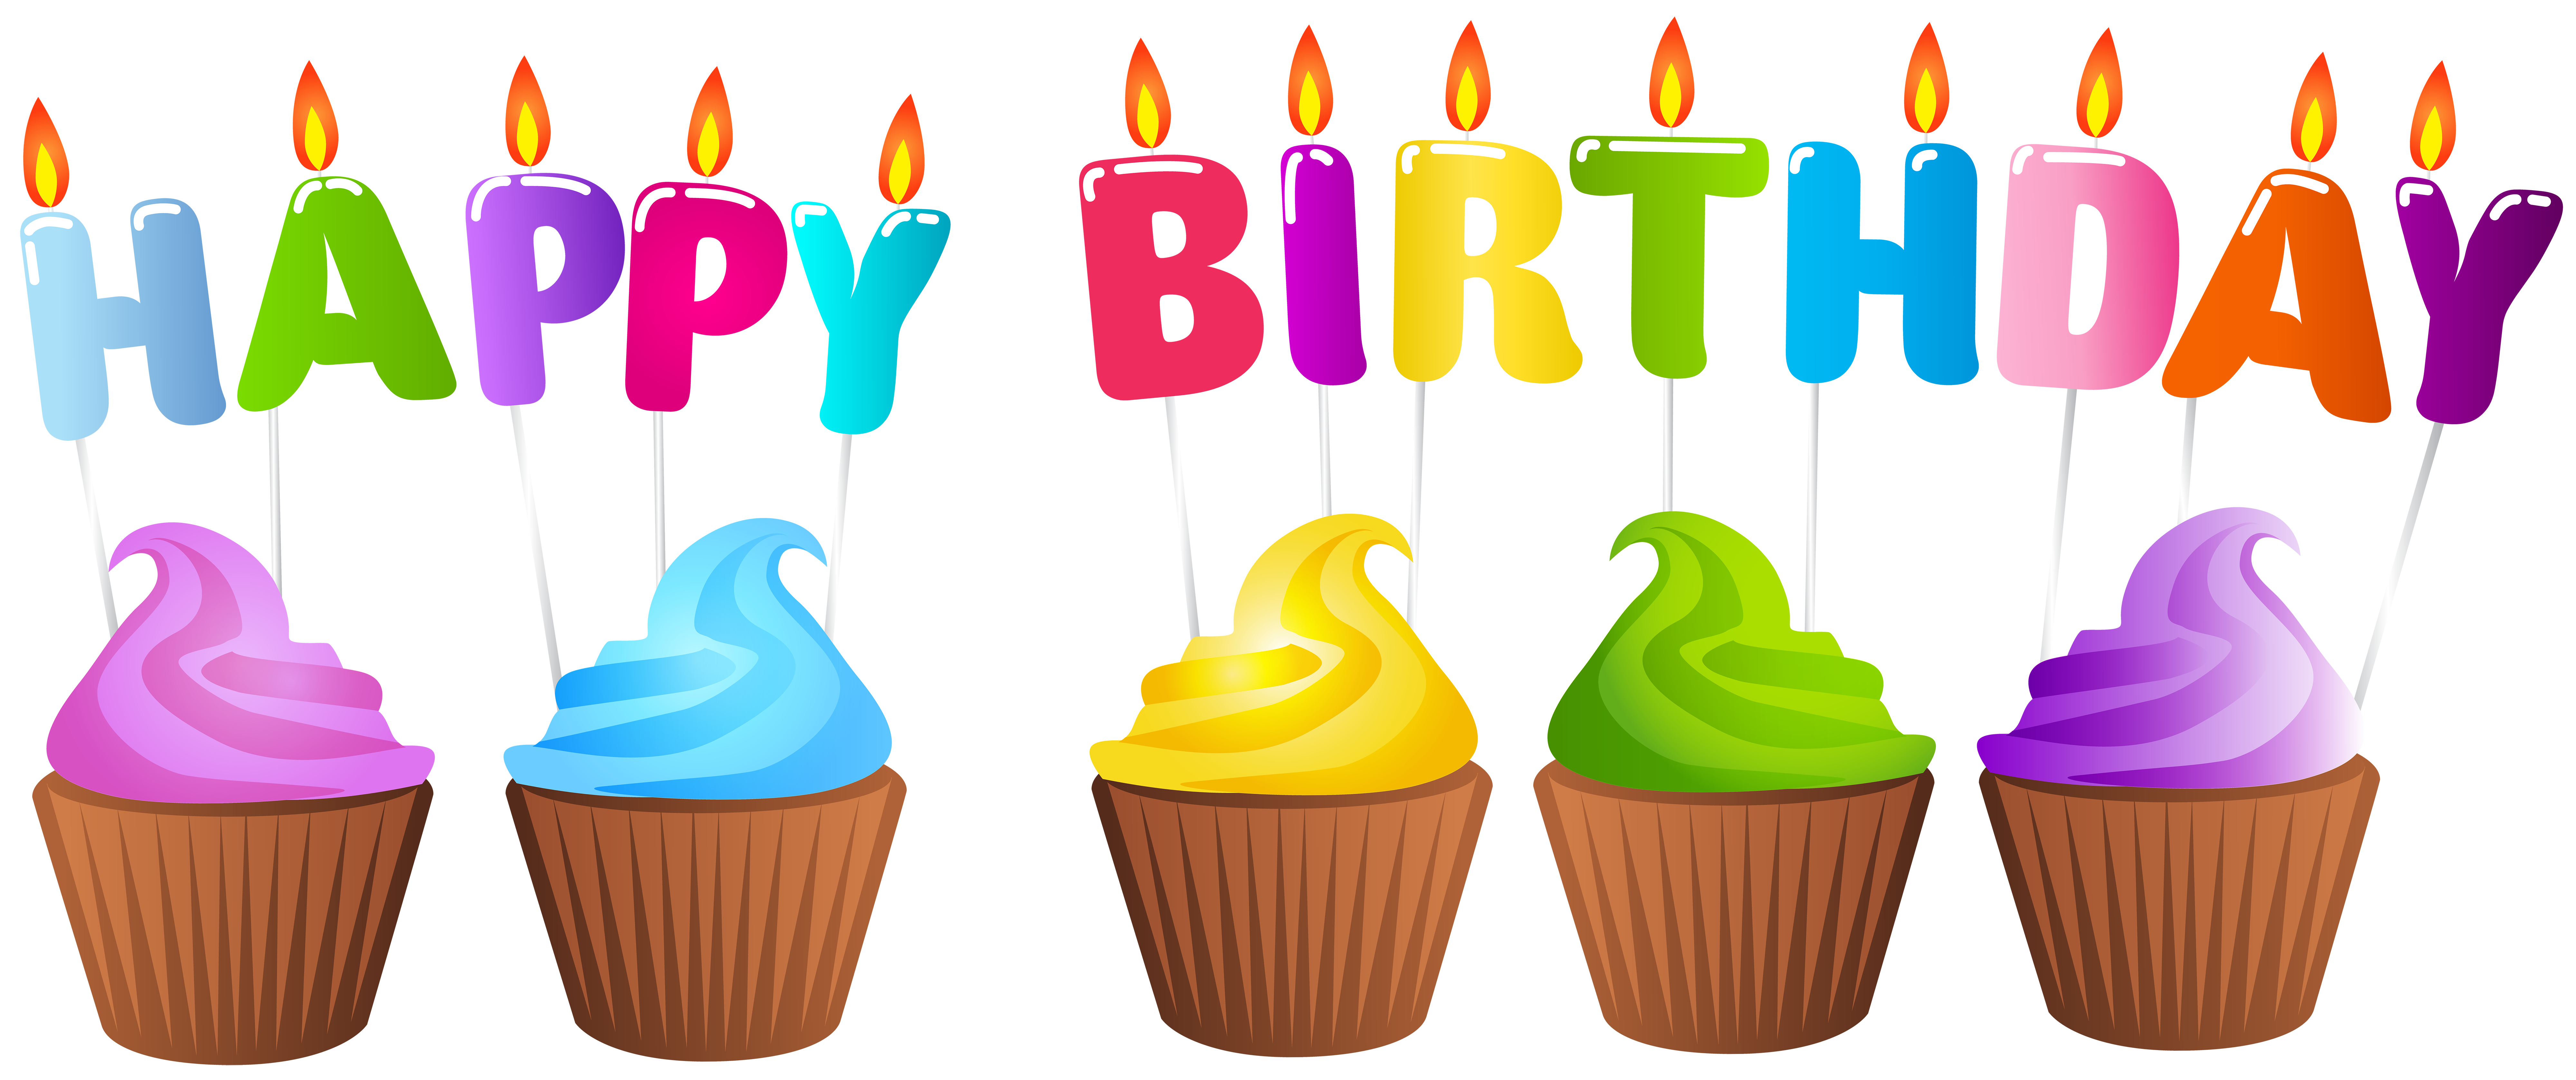 Download Birthday Candles And Cakes PNG Images